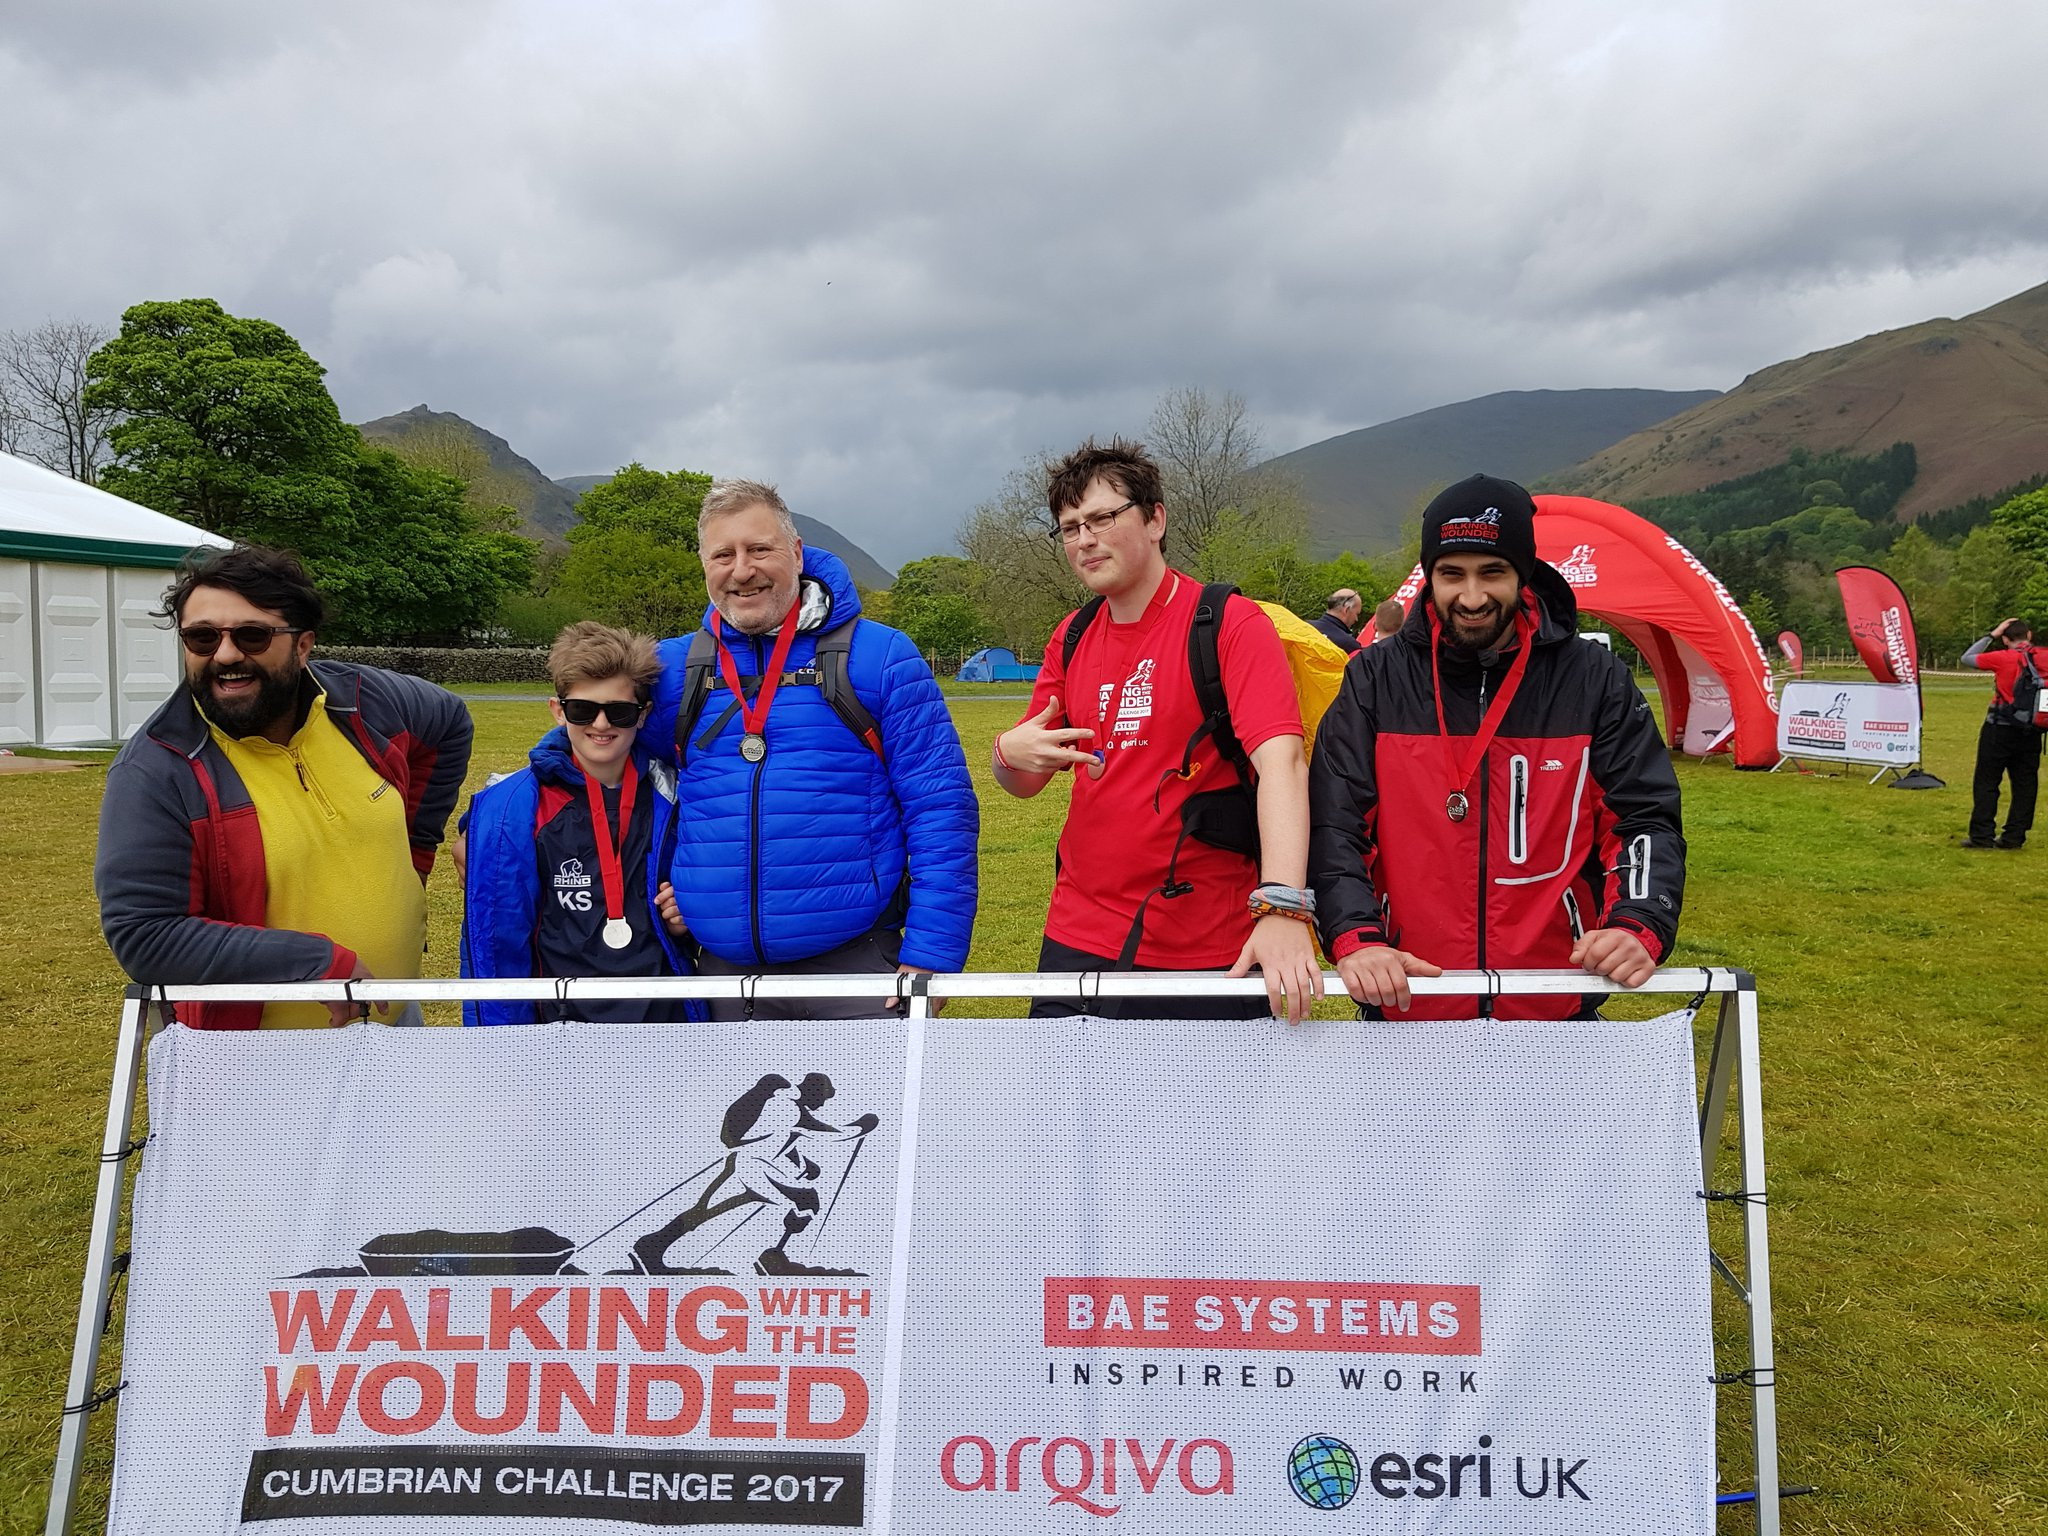 We did it #cumbrianchallenge #shattered. Thank you @GOSSOutdoor for the company :) https://t.co/tTWXaySAH6